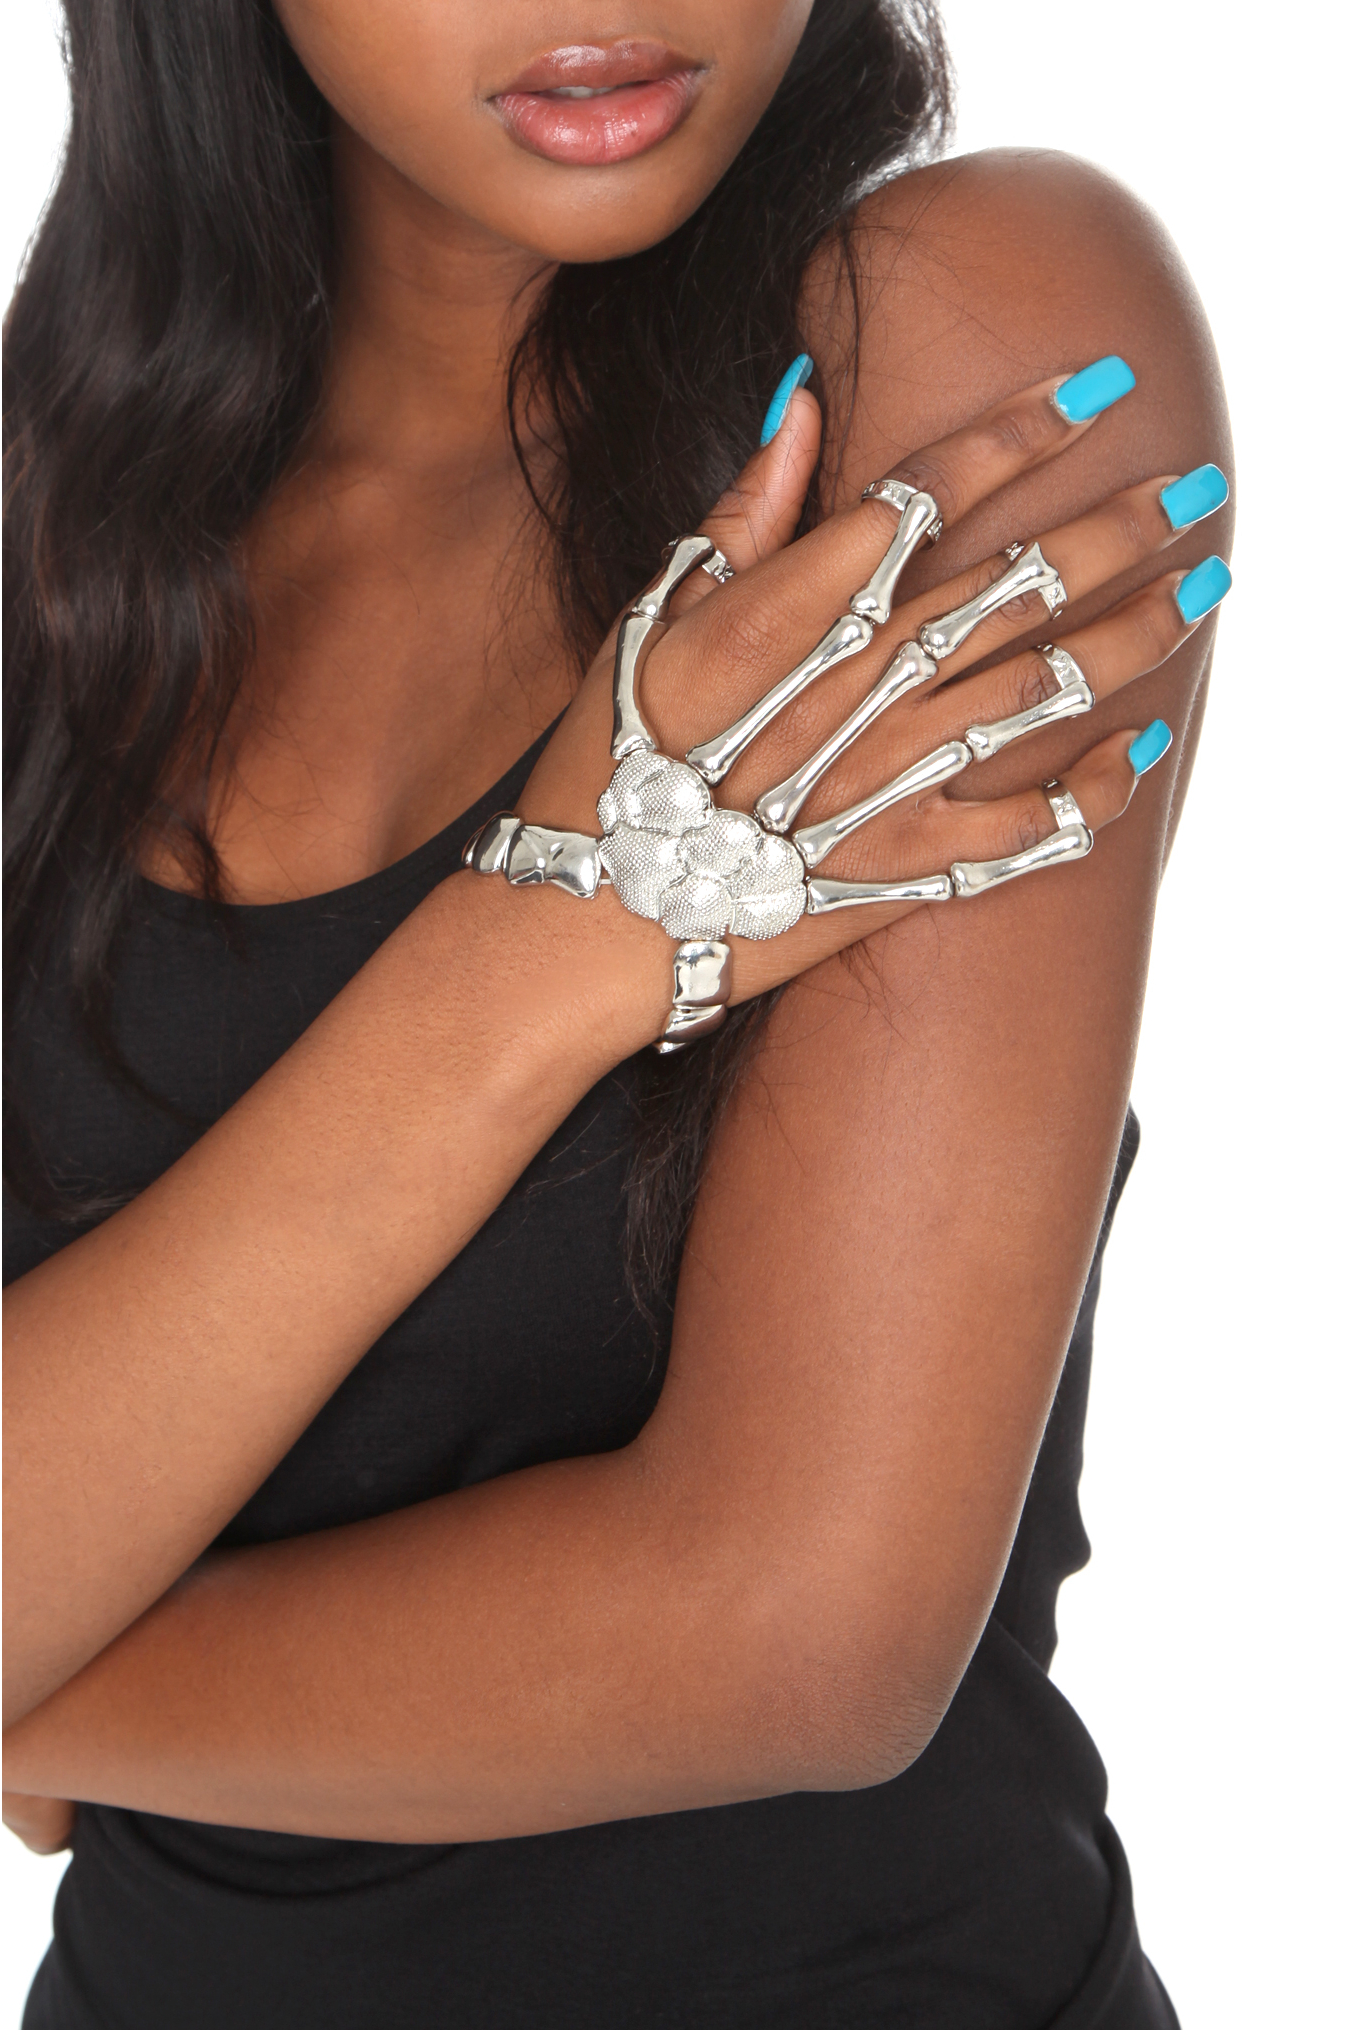 Skeleton Hand Ring Bracelet | Hot Topic